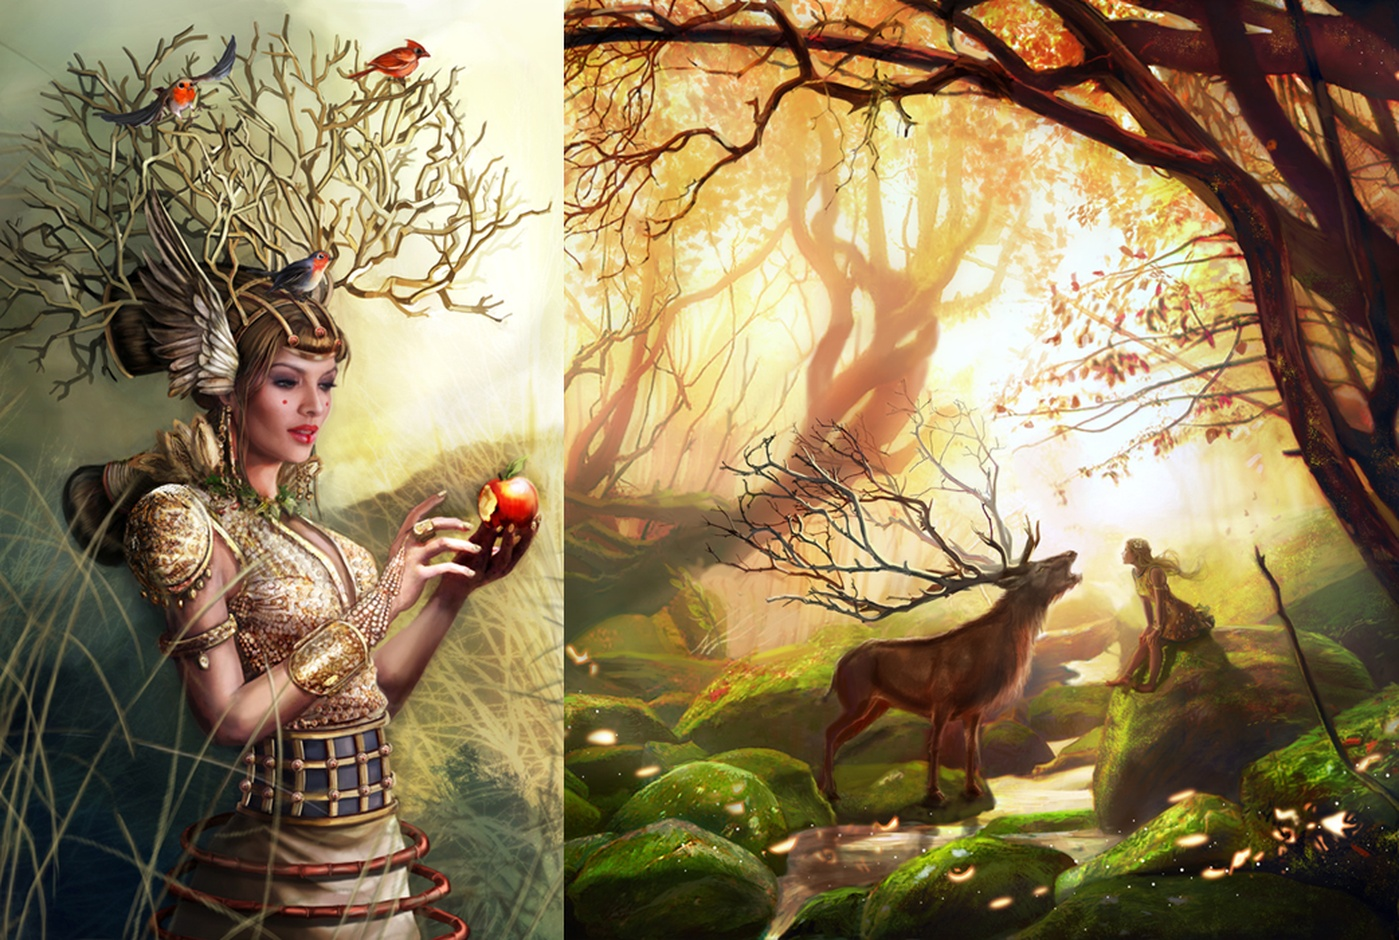 Laura Csajagi - Illustrations Carowings et Golden forest